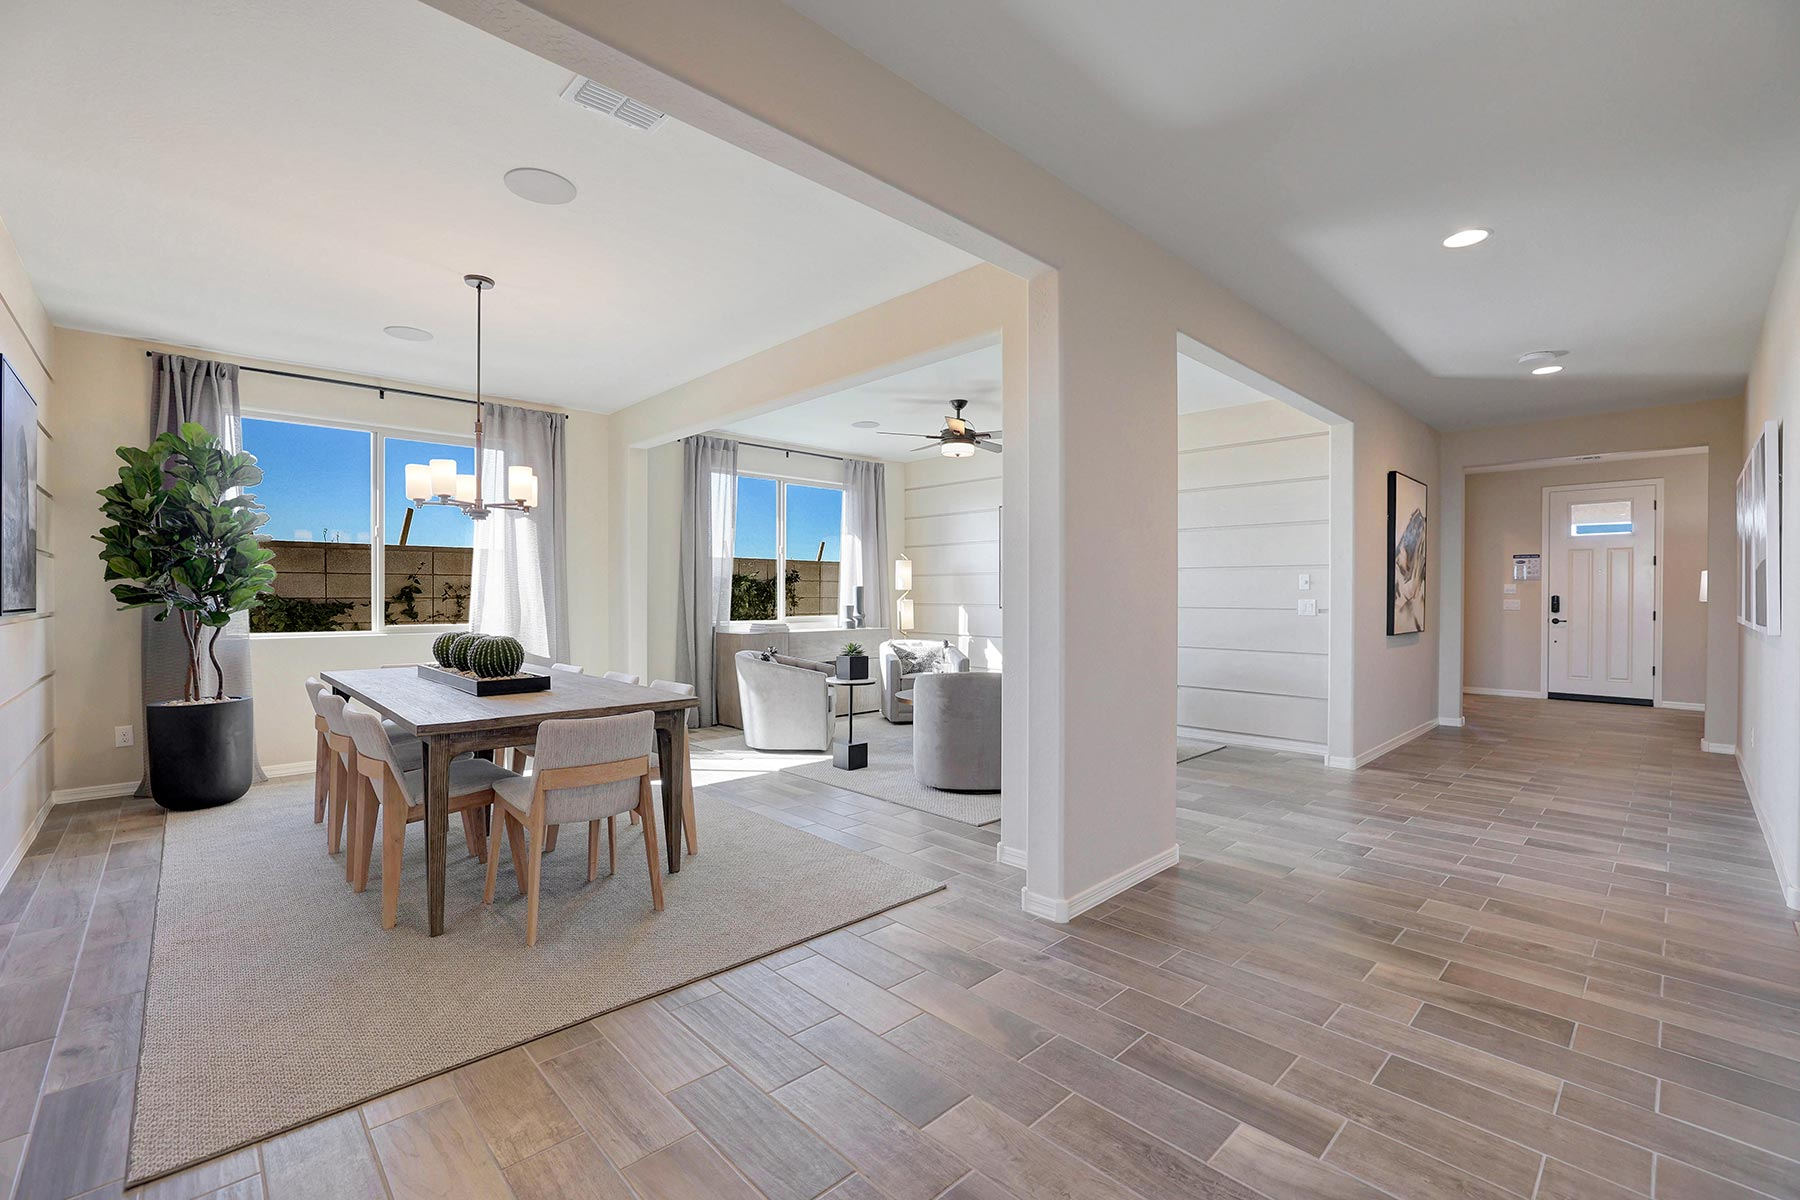 Bellwood Plan Dining at Azure Canyon in Goodyear Arizona by Mattamy Homes